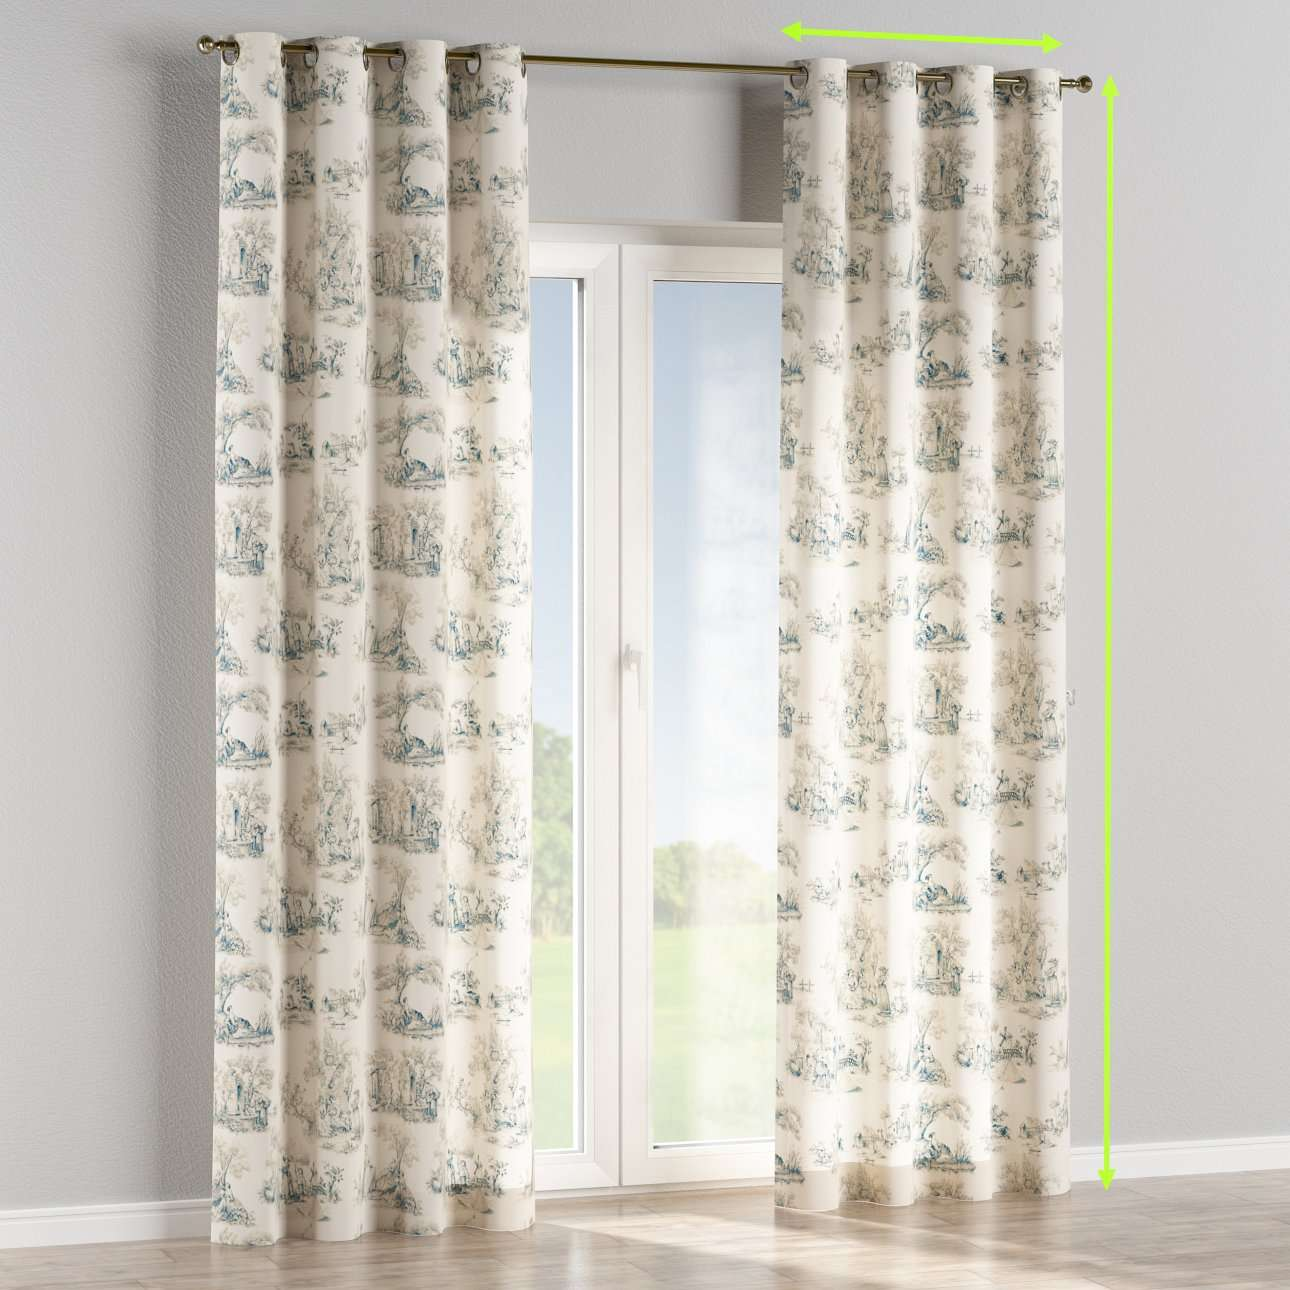 Eyelet lined curtains in collection Avinon, fabric: 132-66